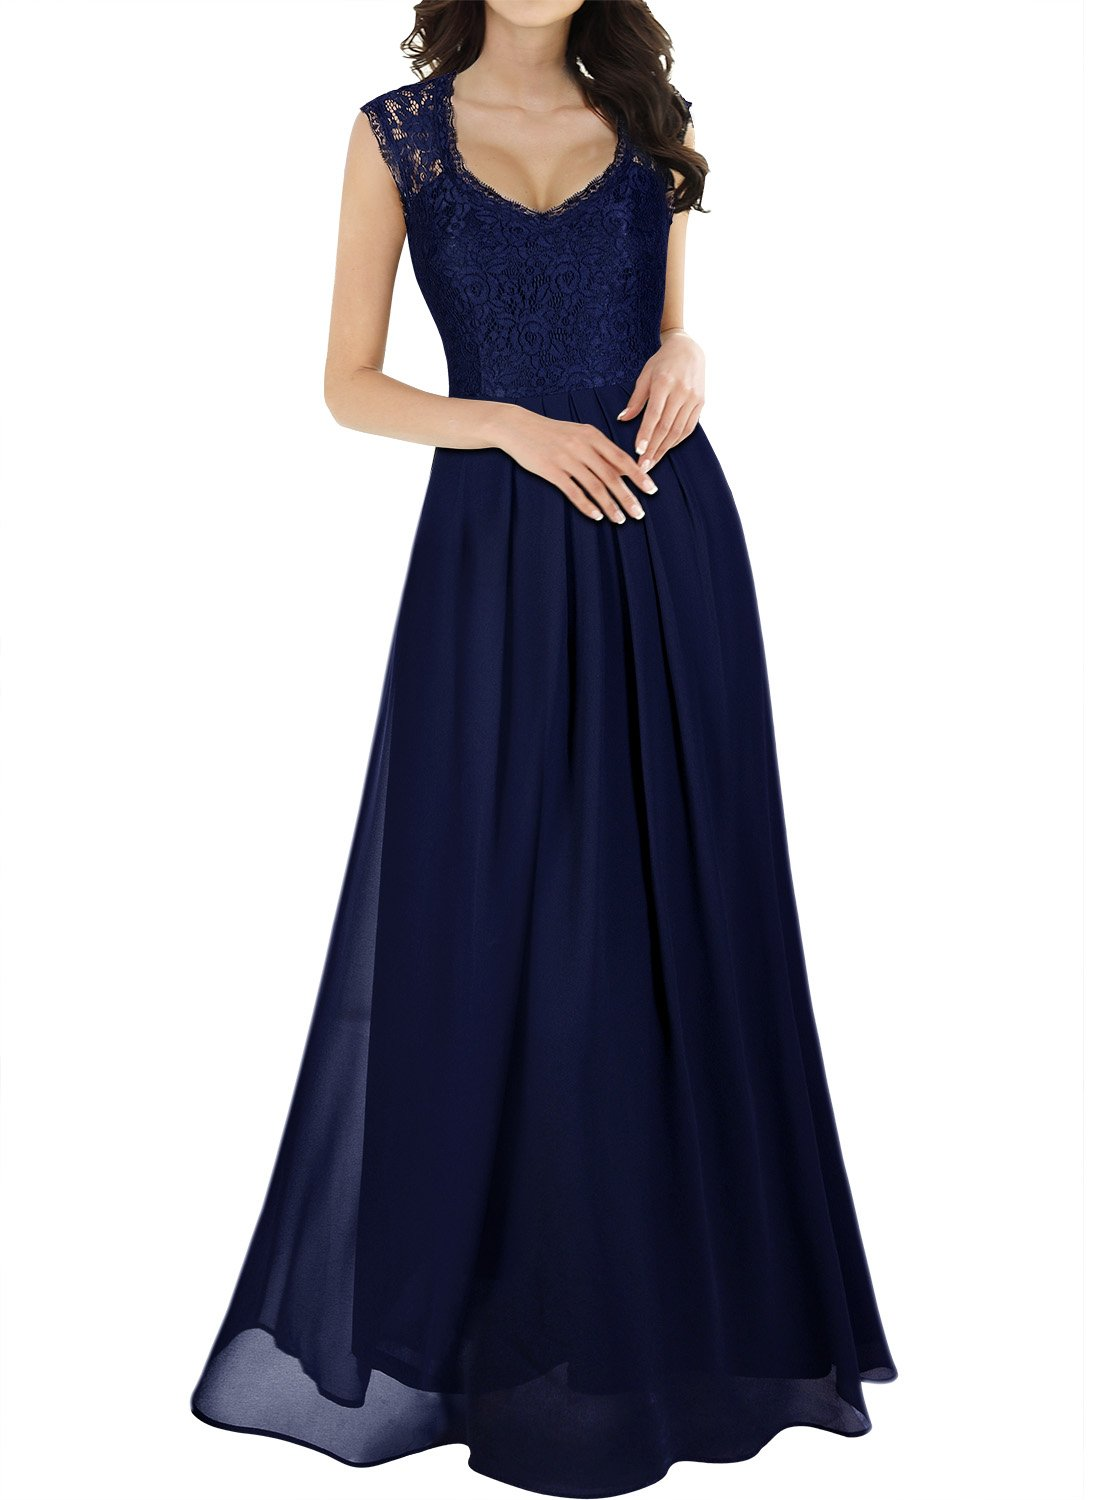 Mother Of The Bride Dresses - Women's Casual Deep- V Neck Sleeveless Vintage Wedding Maxi Dress